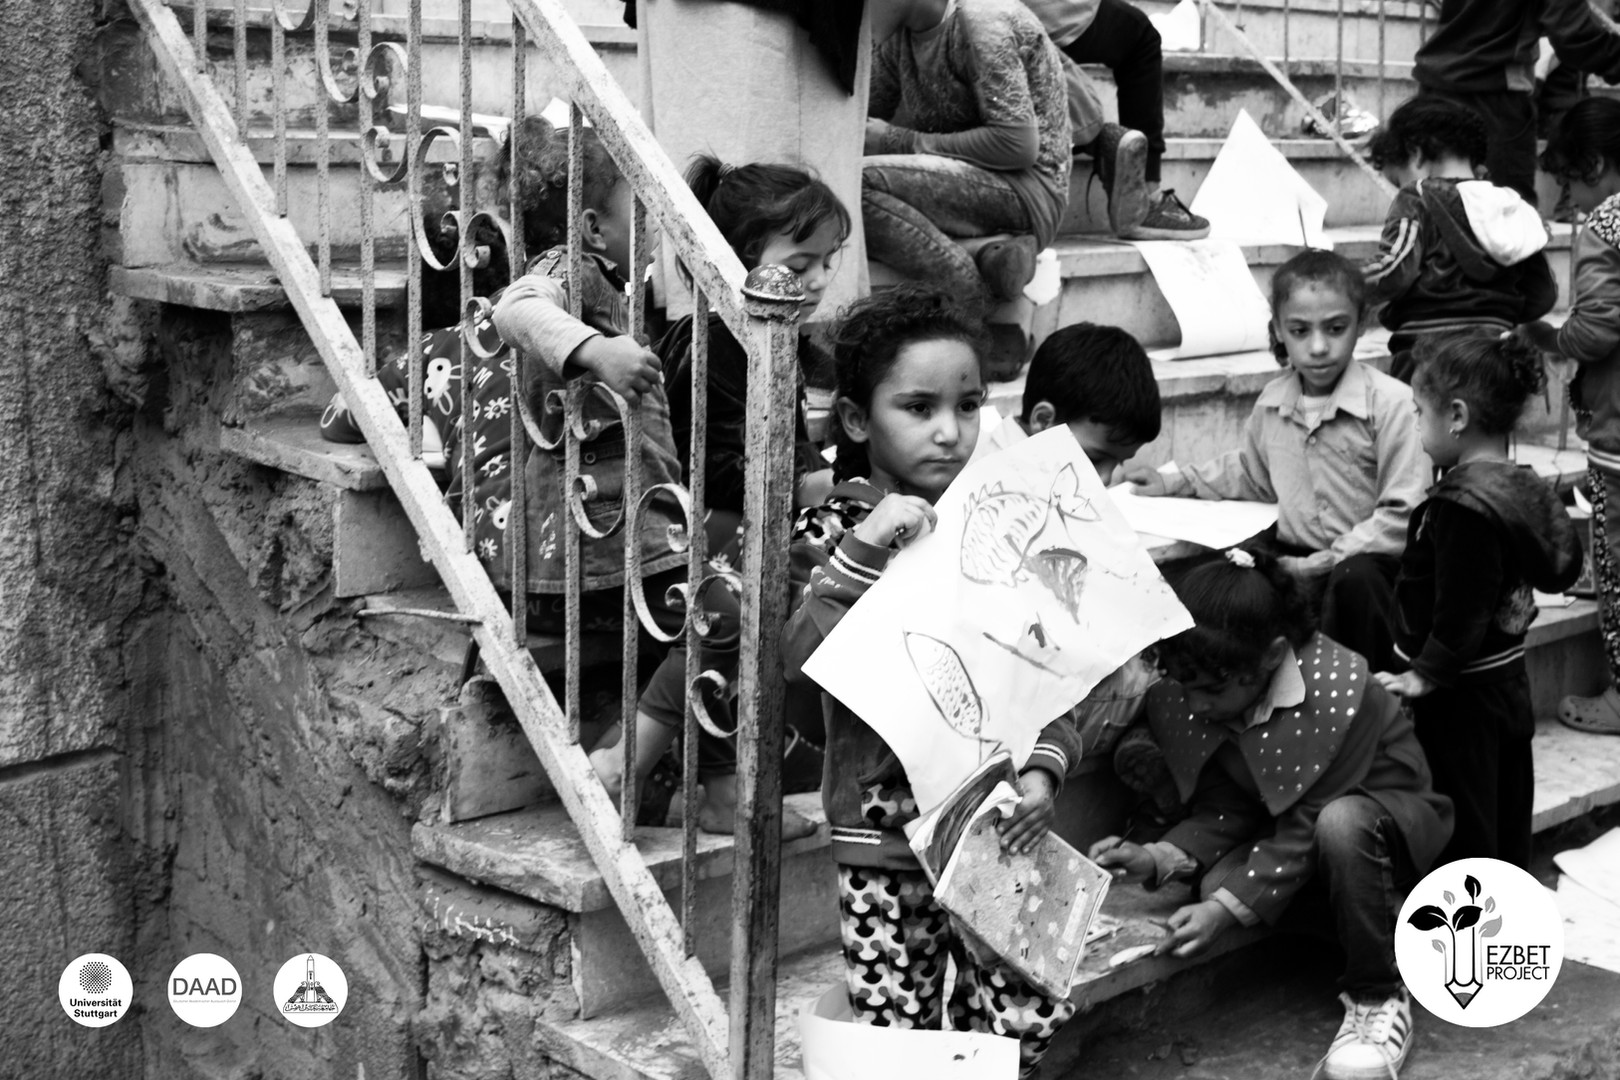 Geziret Al Dahab 1 - Kids on Staircase holding their drawings